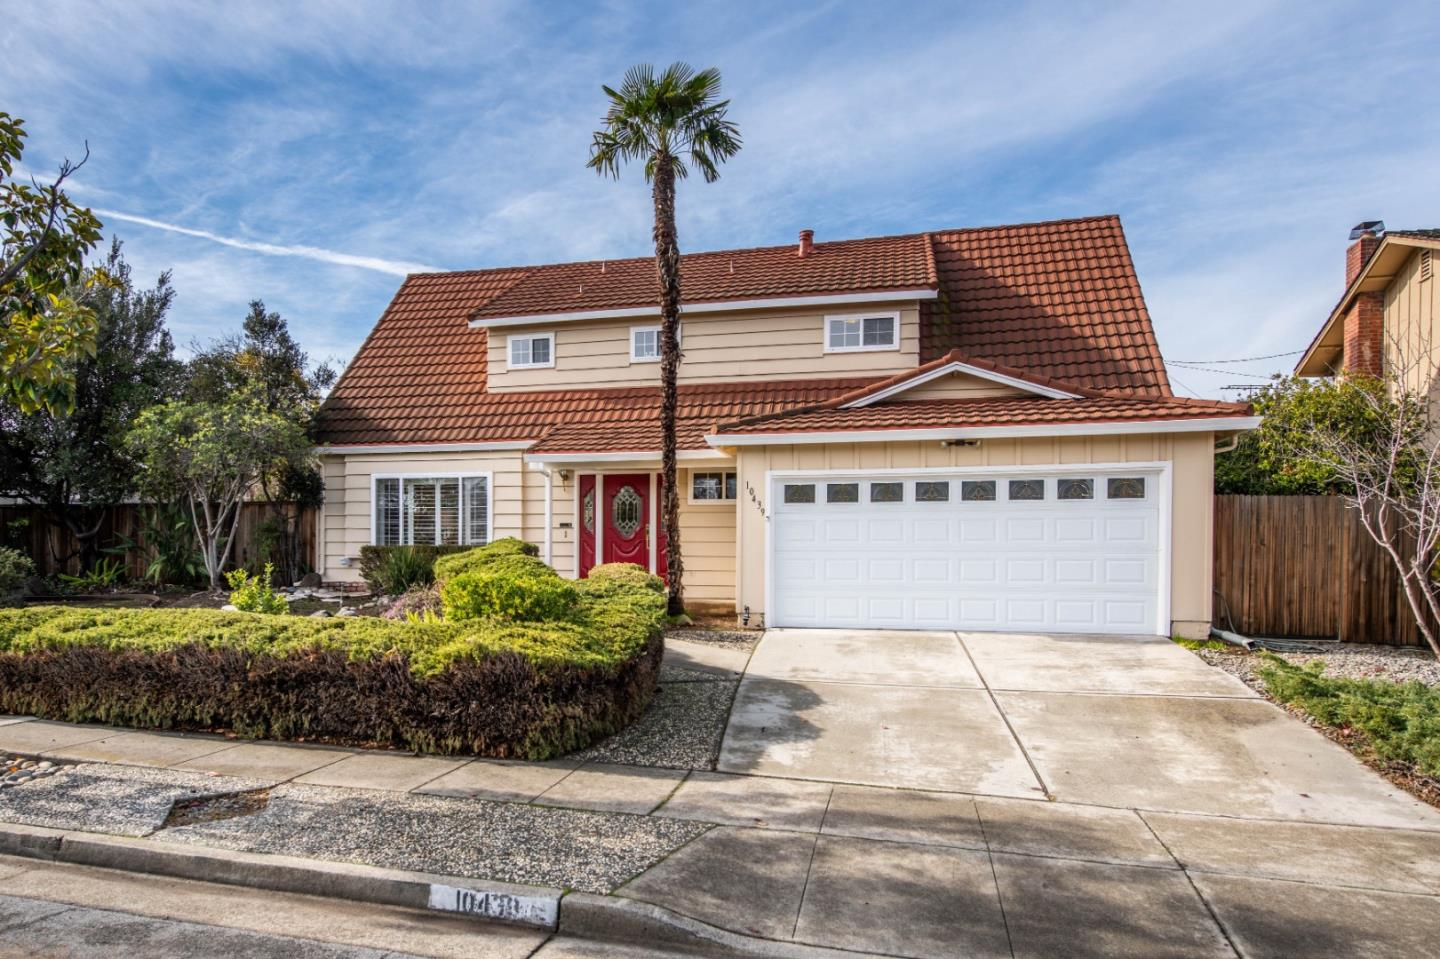 Detail Gallery Image 1 of 1 For 10439 Cherry Tree Ln, Cupertino, CA, 95014 - 4 Beds | 2/1 Baths